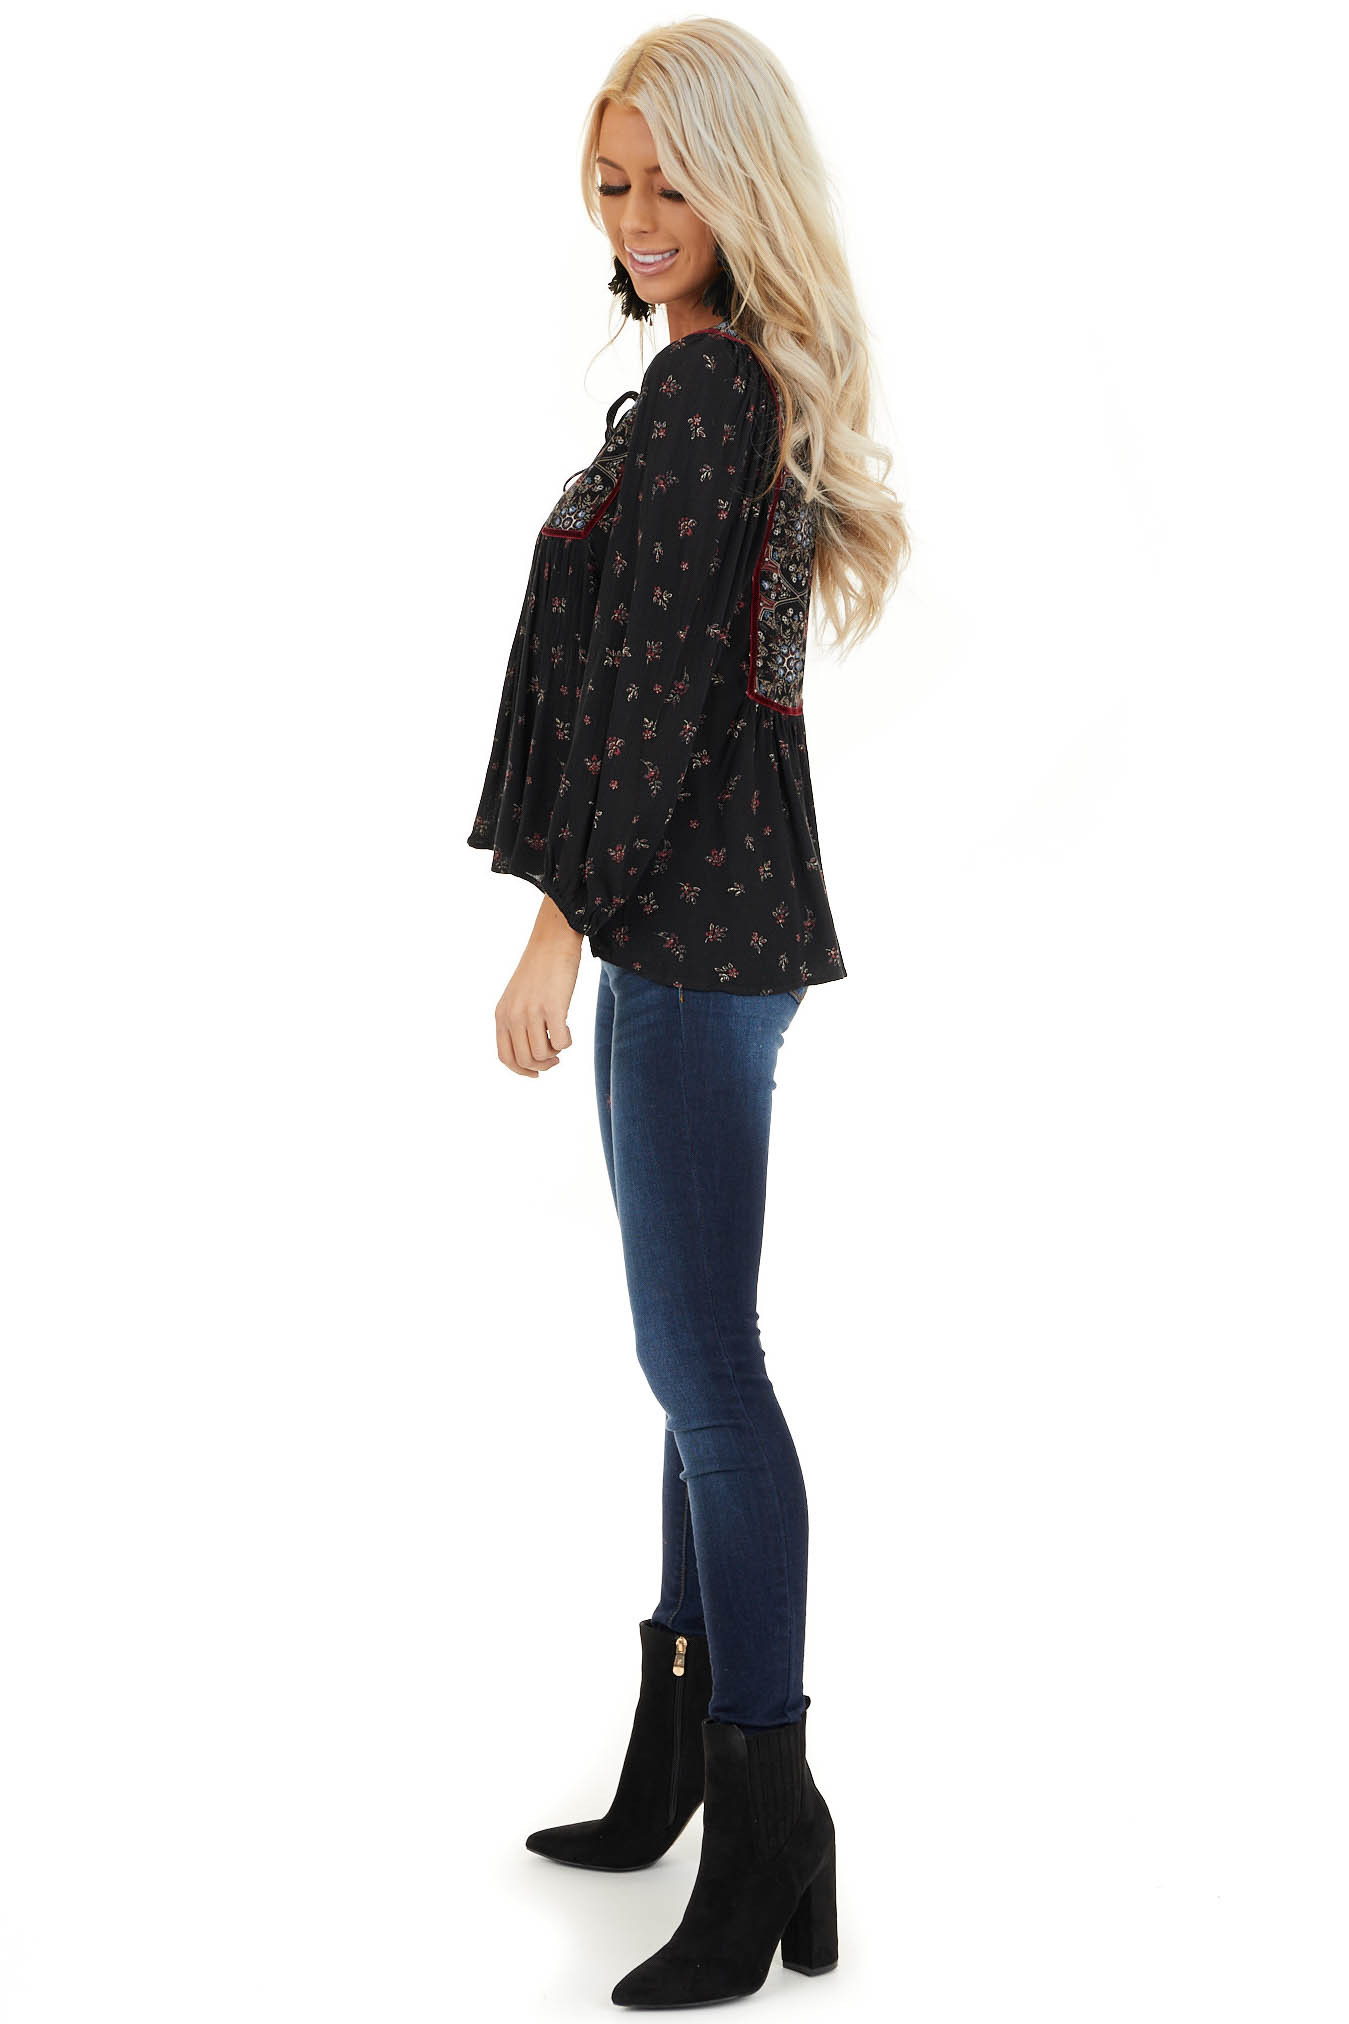 Onyx Black Floral Print 3/4 Sleeve Peasant Top with Tie side full body